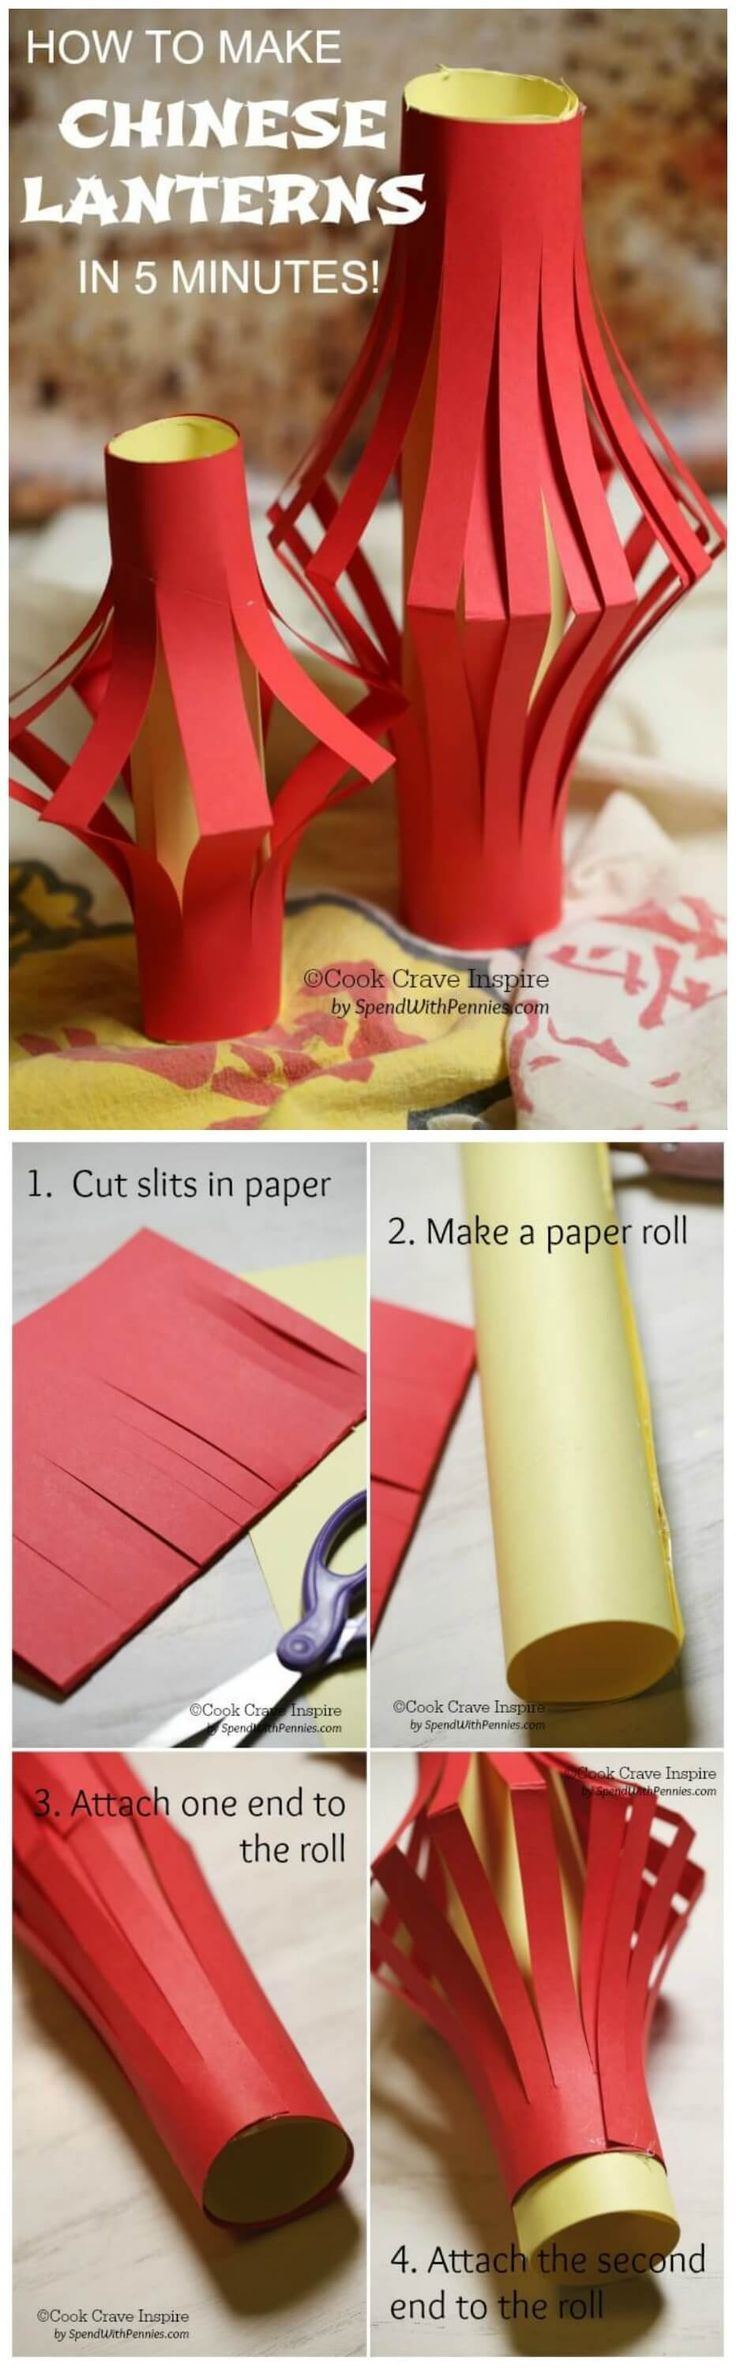 Did you know you can make your own Chinese lanterns in under 5 minutes? These are perfect for Chinese New Year decor or as a fun activity for kids!